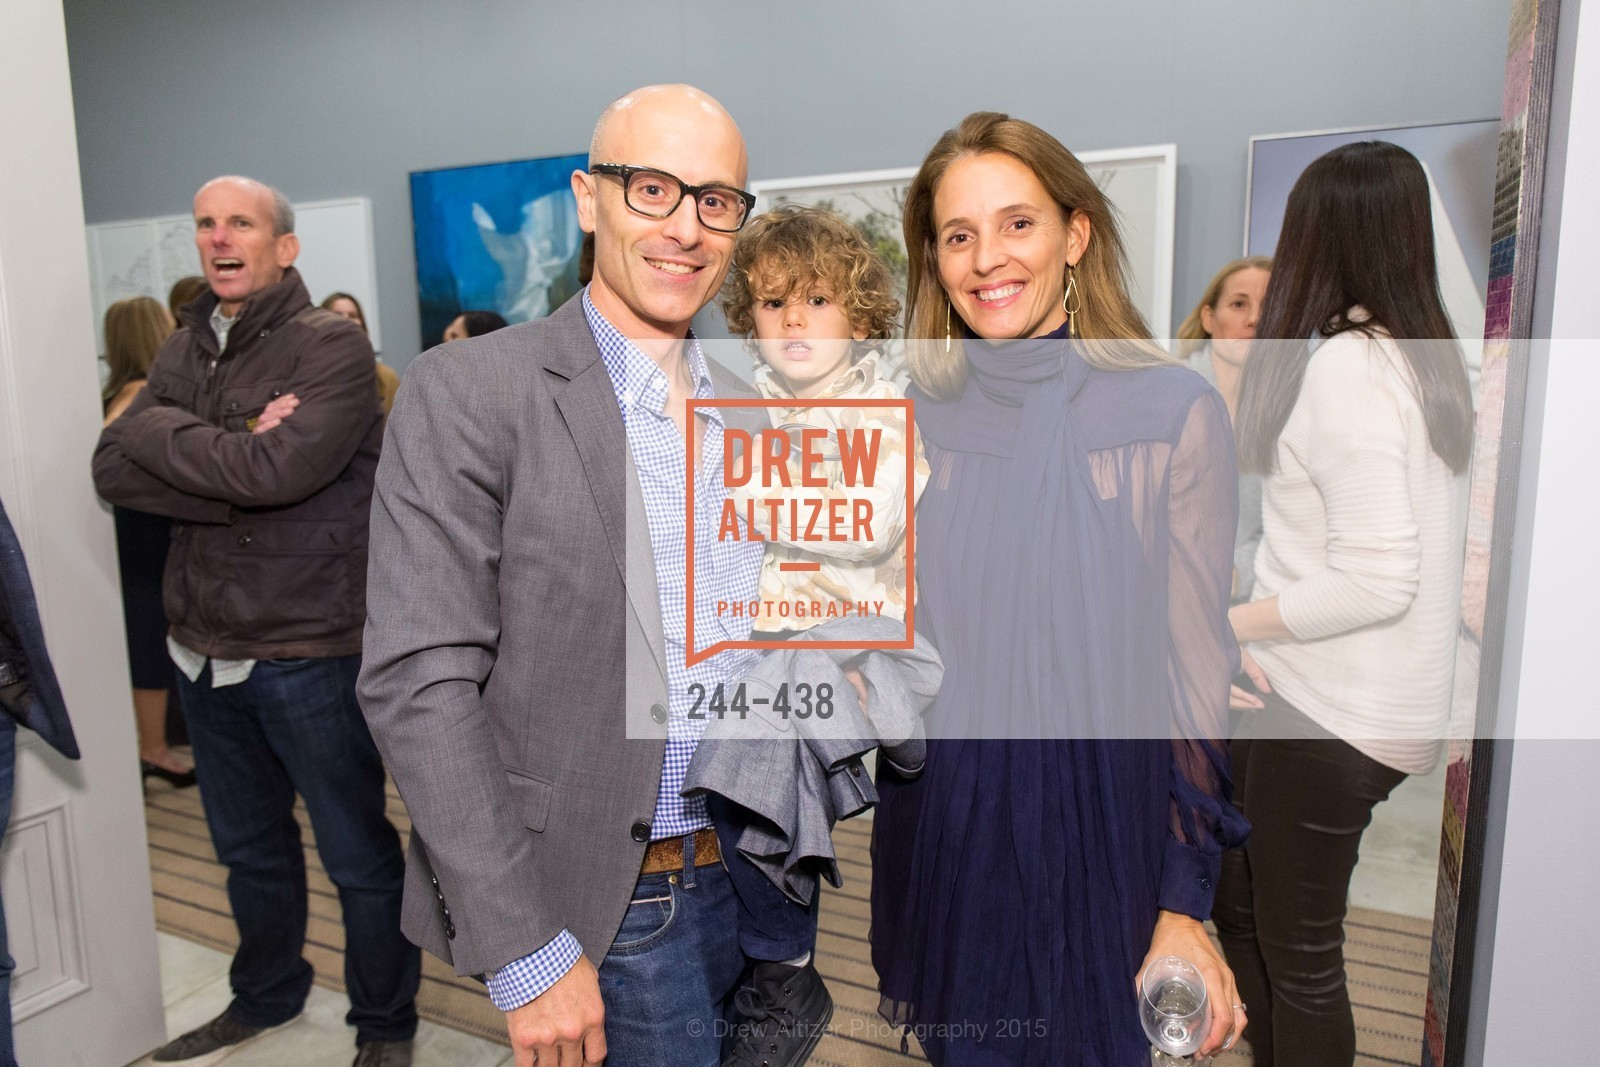 Joey Pizzialli, Bodie Pizzialli, Evie Simon, Stephanie Breitbard Fine Arts San Francisco Opening, Stephanie Breitbard Fine Arts. 843 Montgomery St, November 4th, 2015,Drew Altizer, Drew Altizer Photography, full-service agency, private events, San Francisco photographer, photographer california